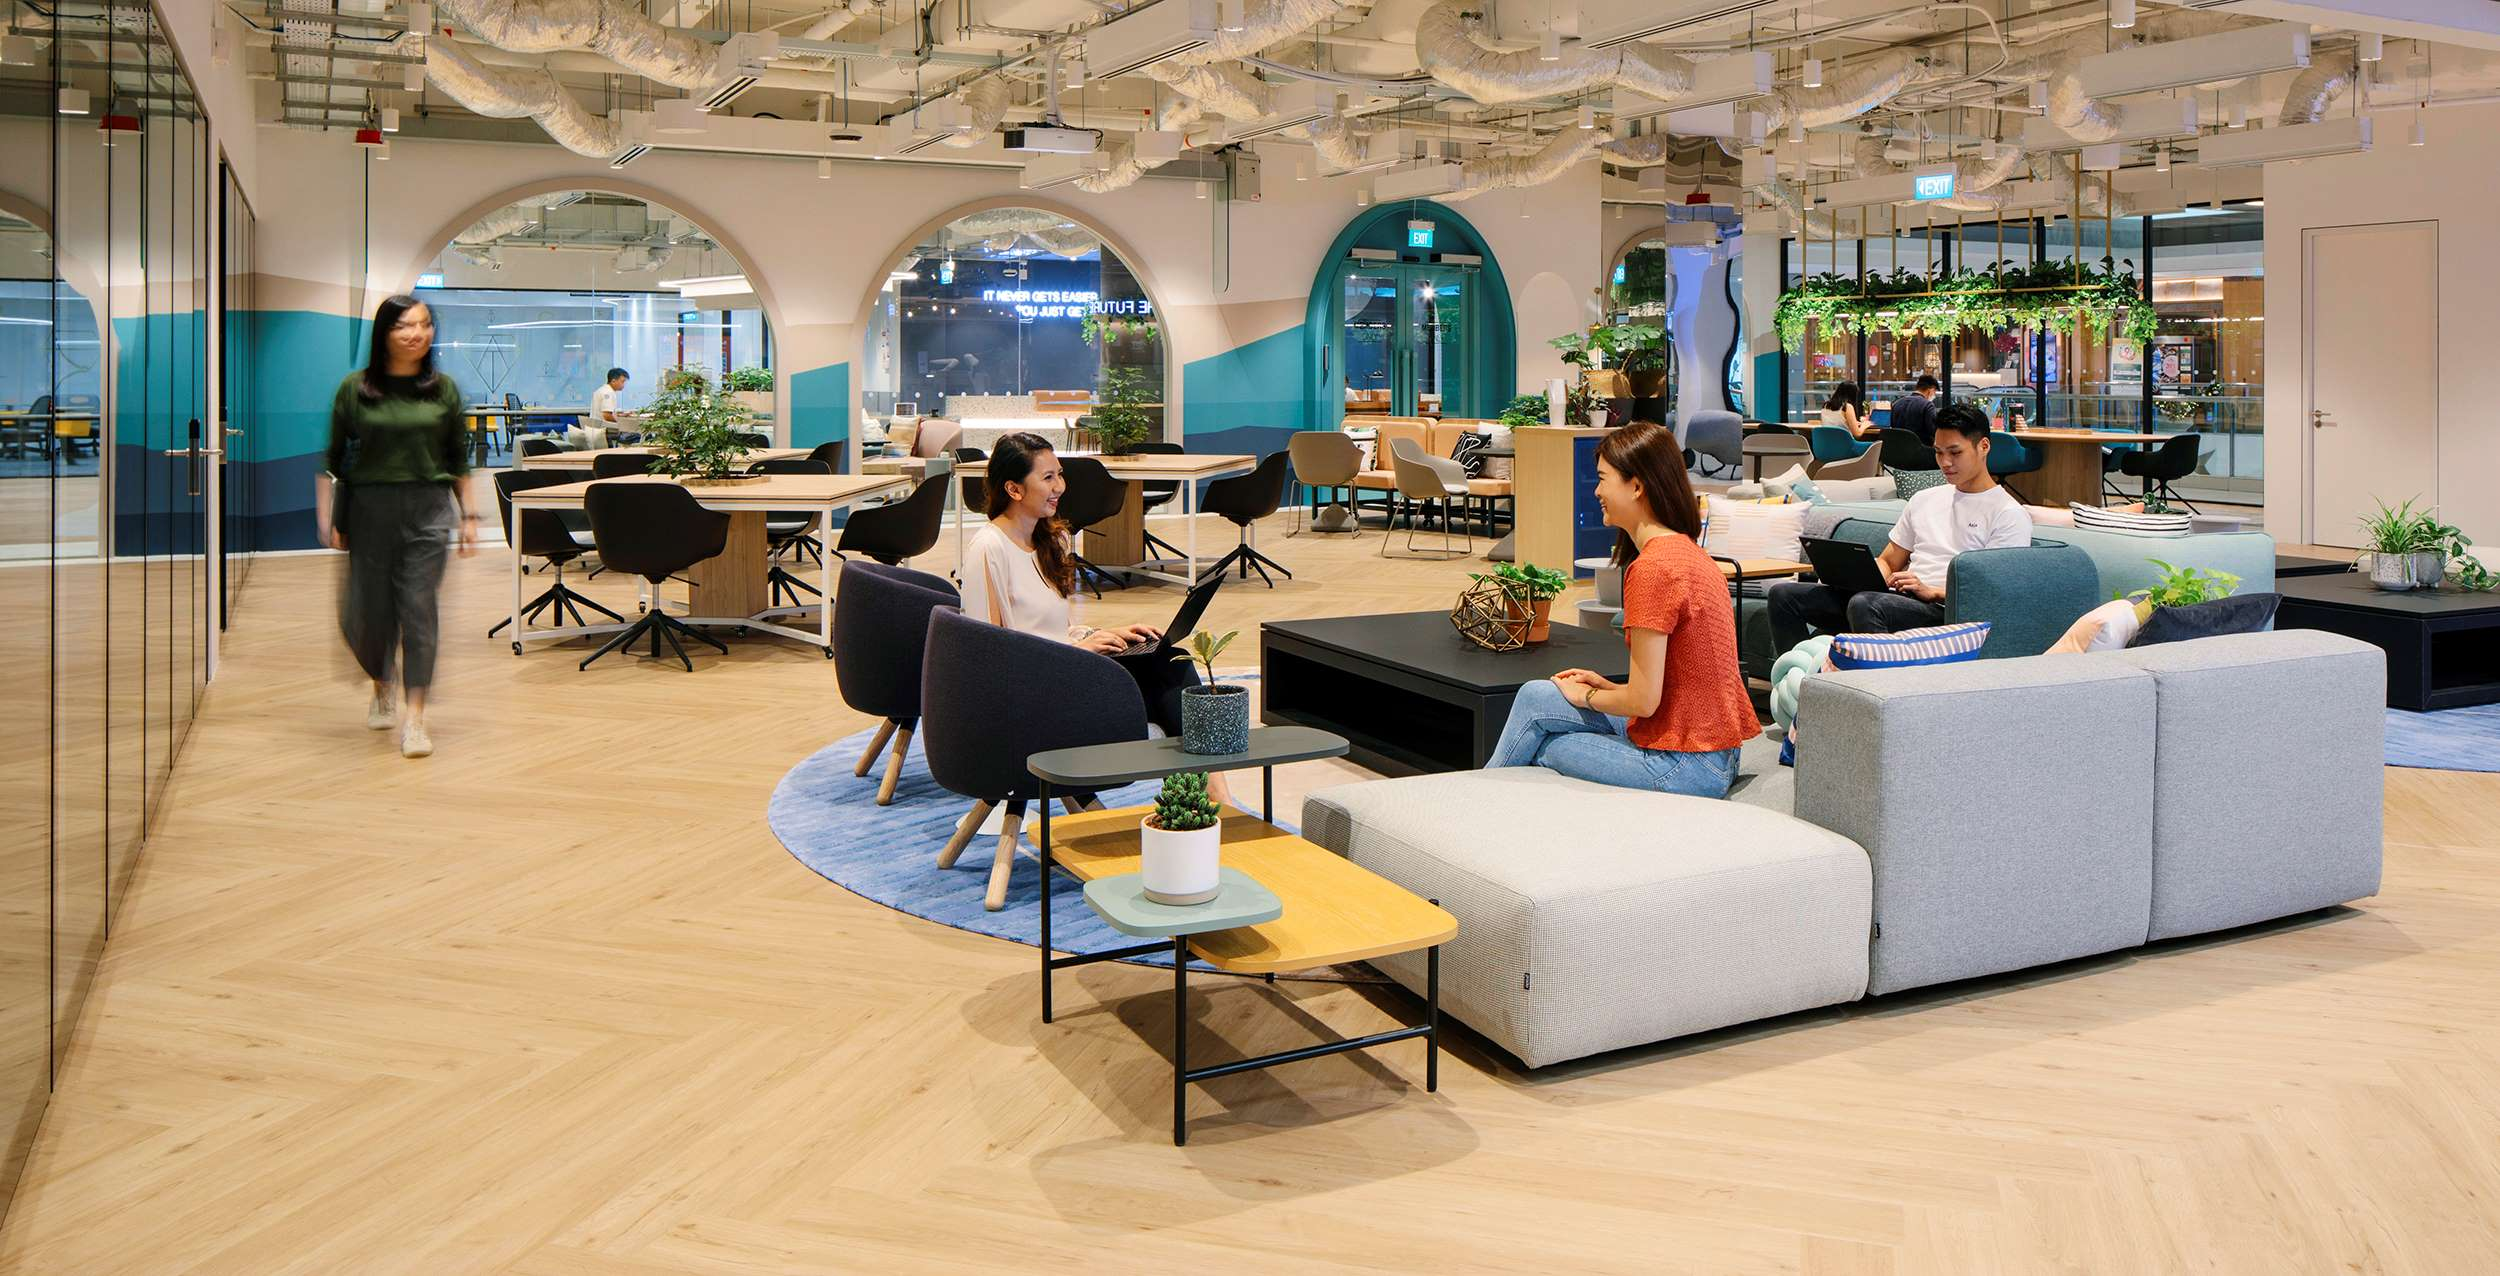 JustCo's on-demand workspace area, Switch, at The Centrepoint in Singapore. / Photo credit: JustCo